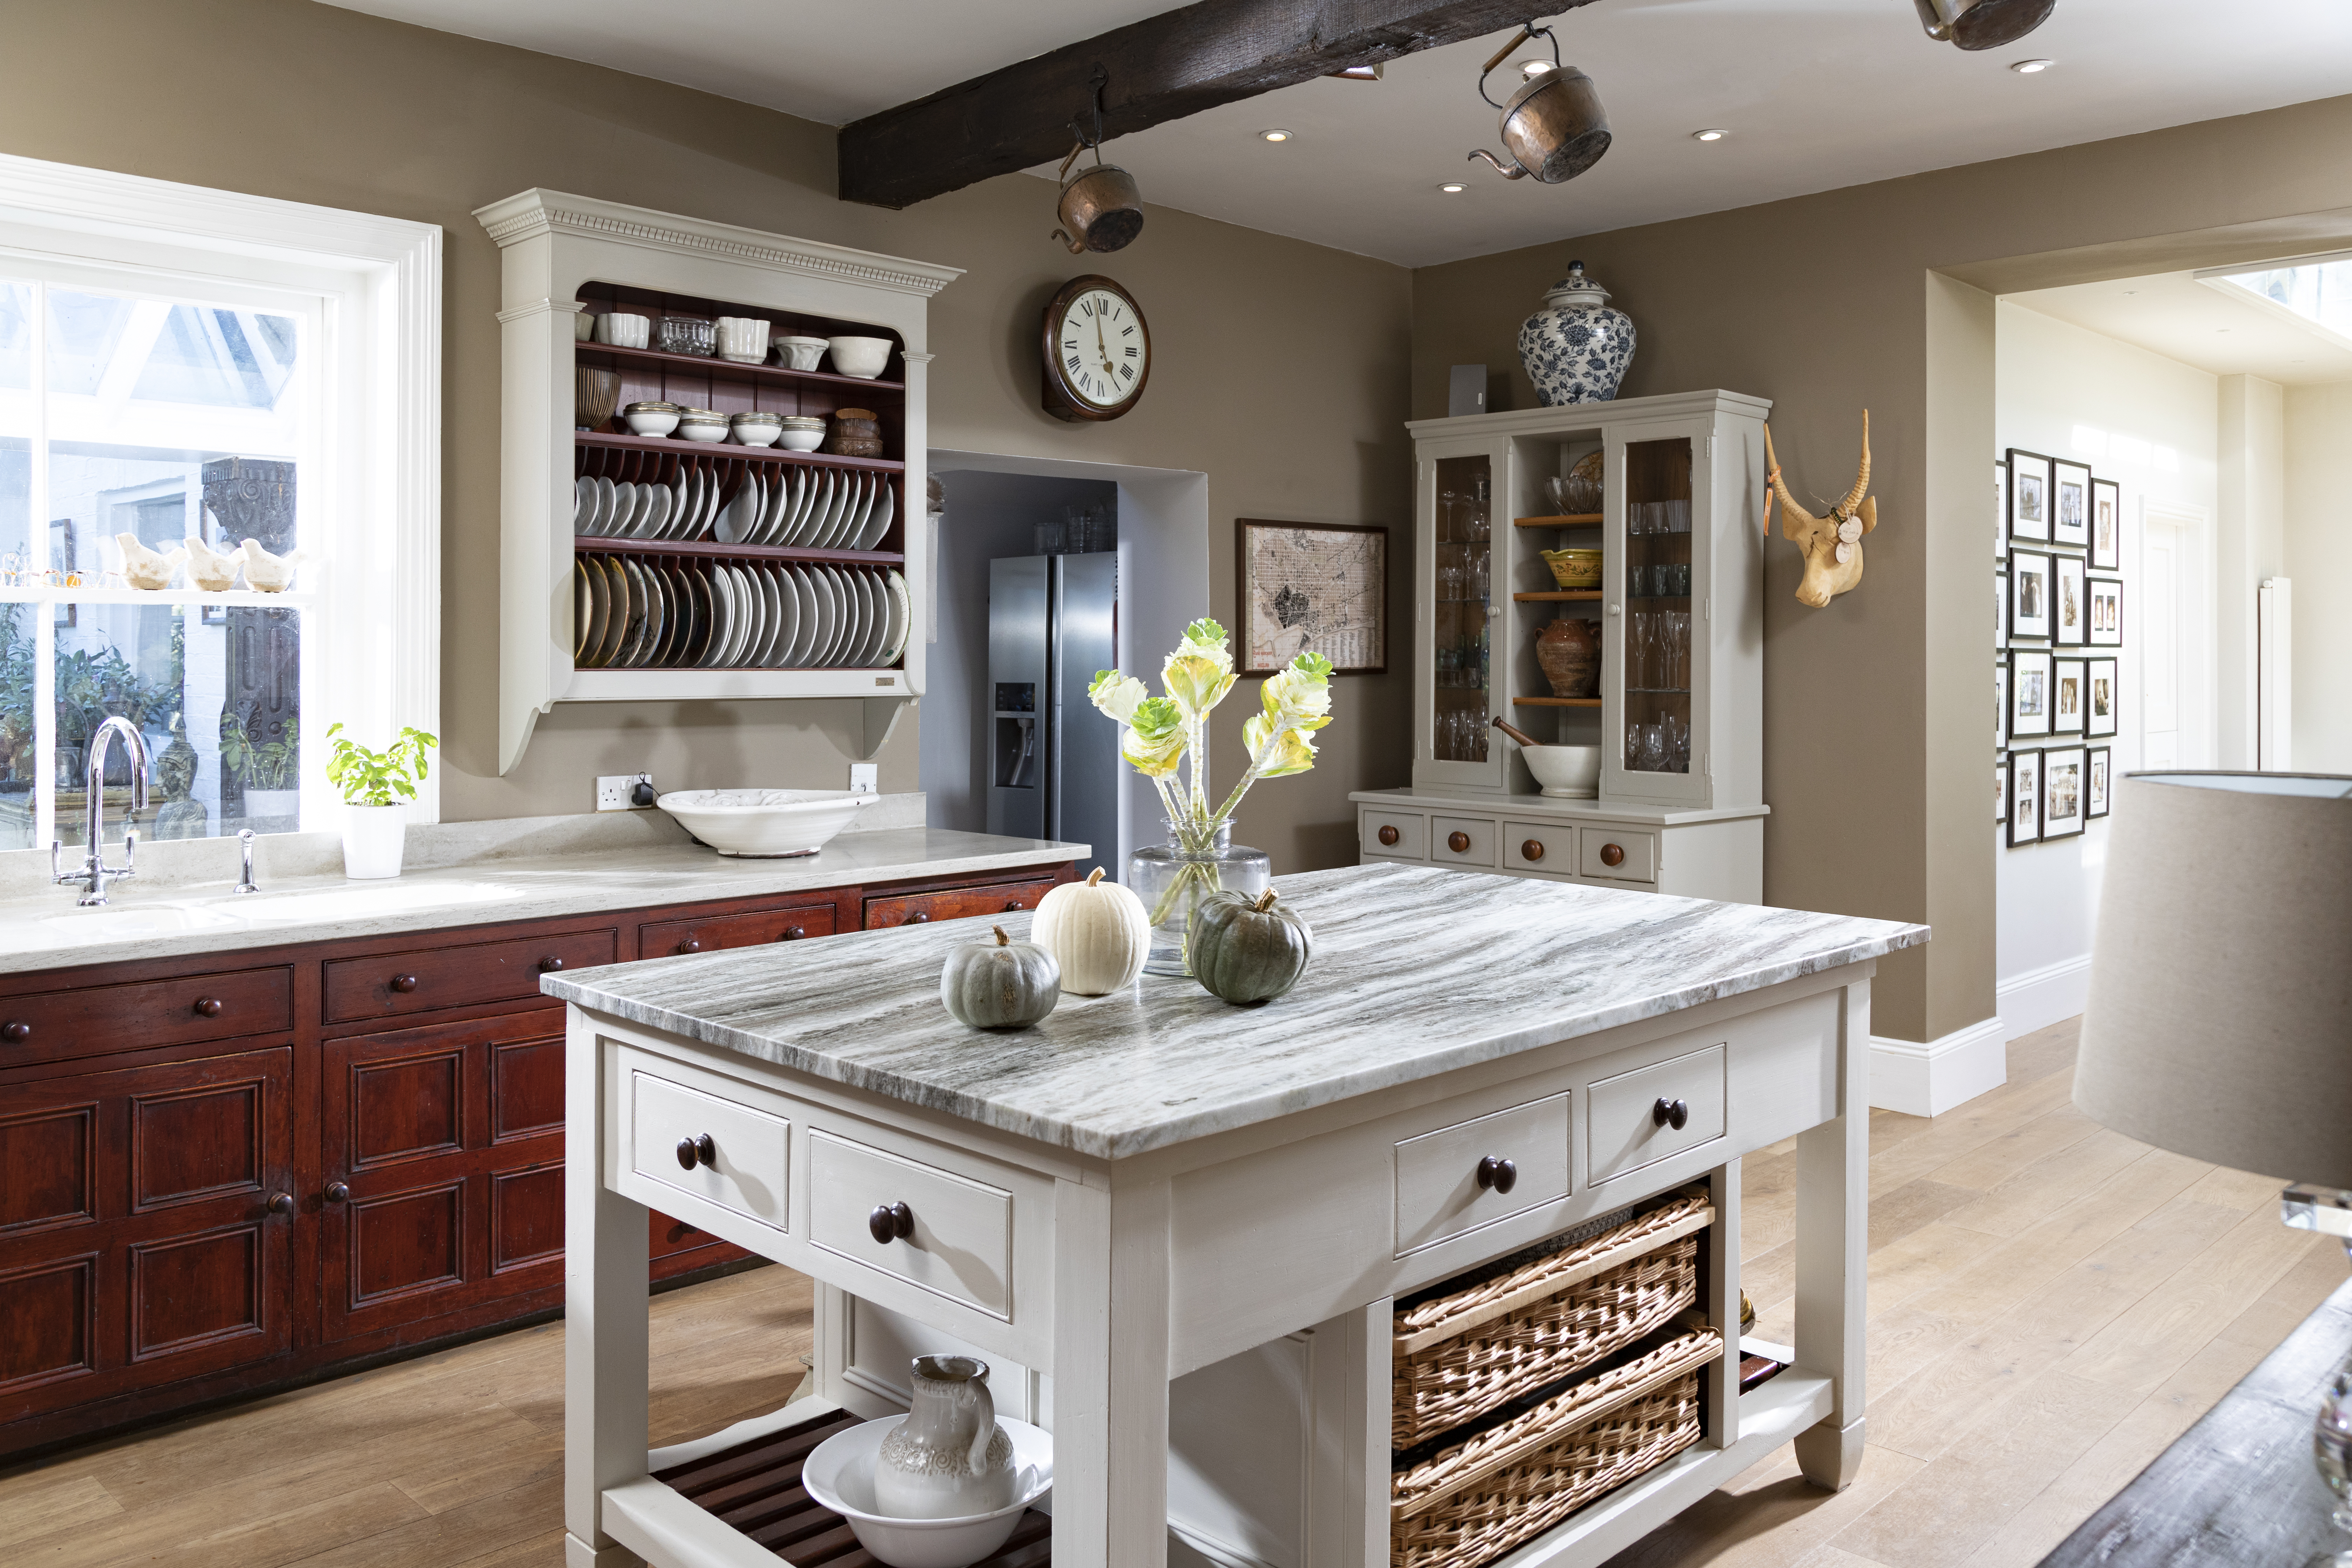 Mixing Materials and Finishes in the Kitchen